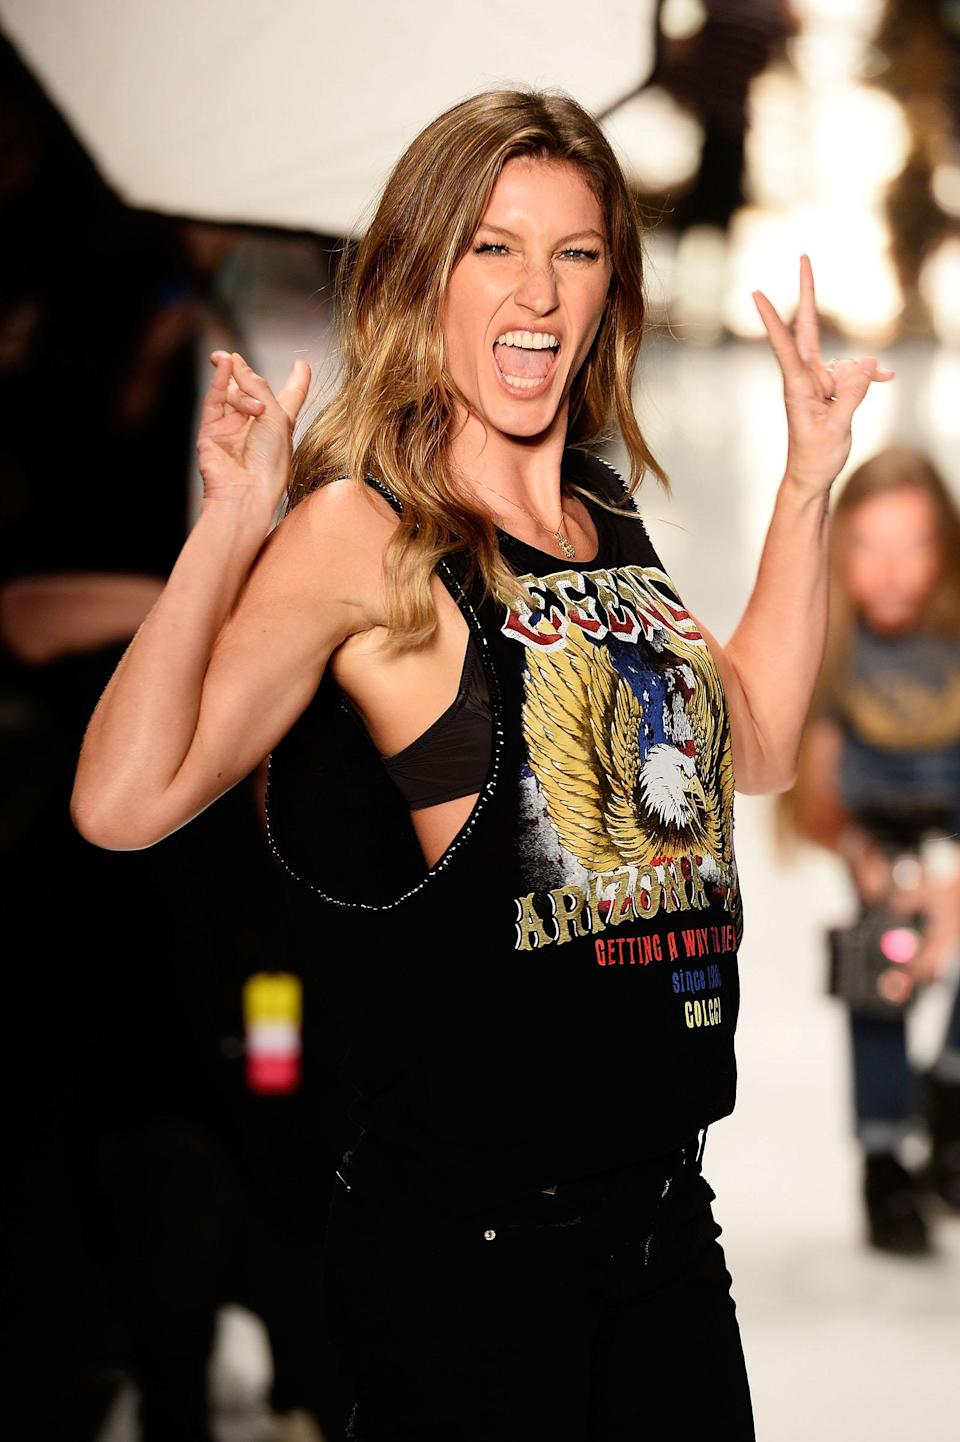 <p>An almost identical shot of Gisele was taken when she walked on the runway for Colcci's winter collection that same year. (Photo: Getty Images) </p>